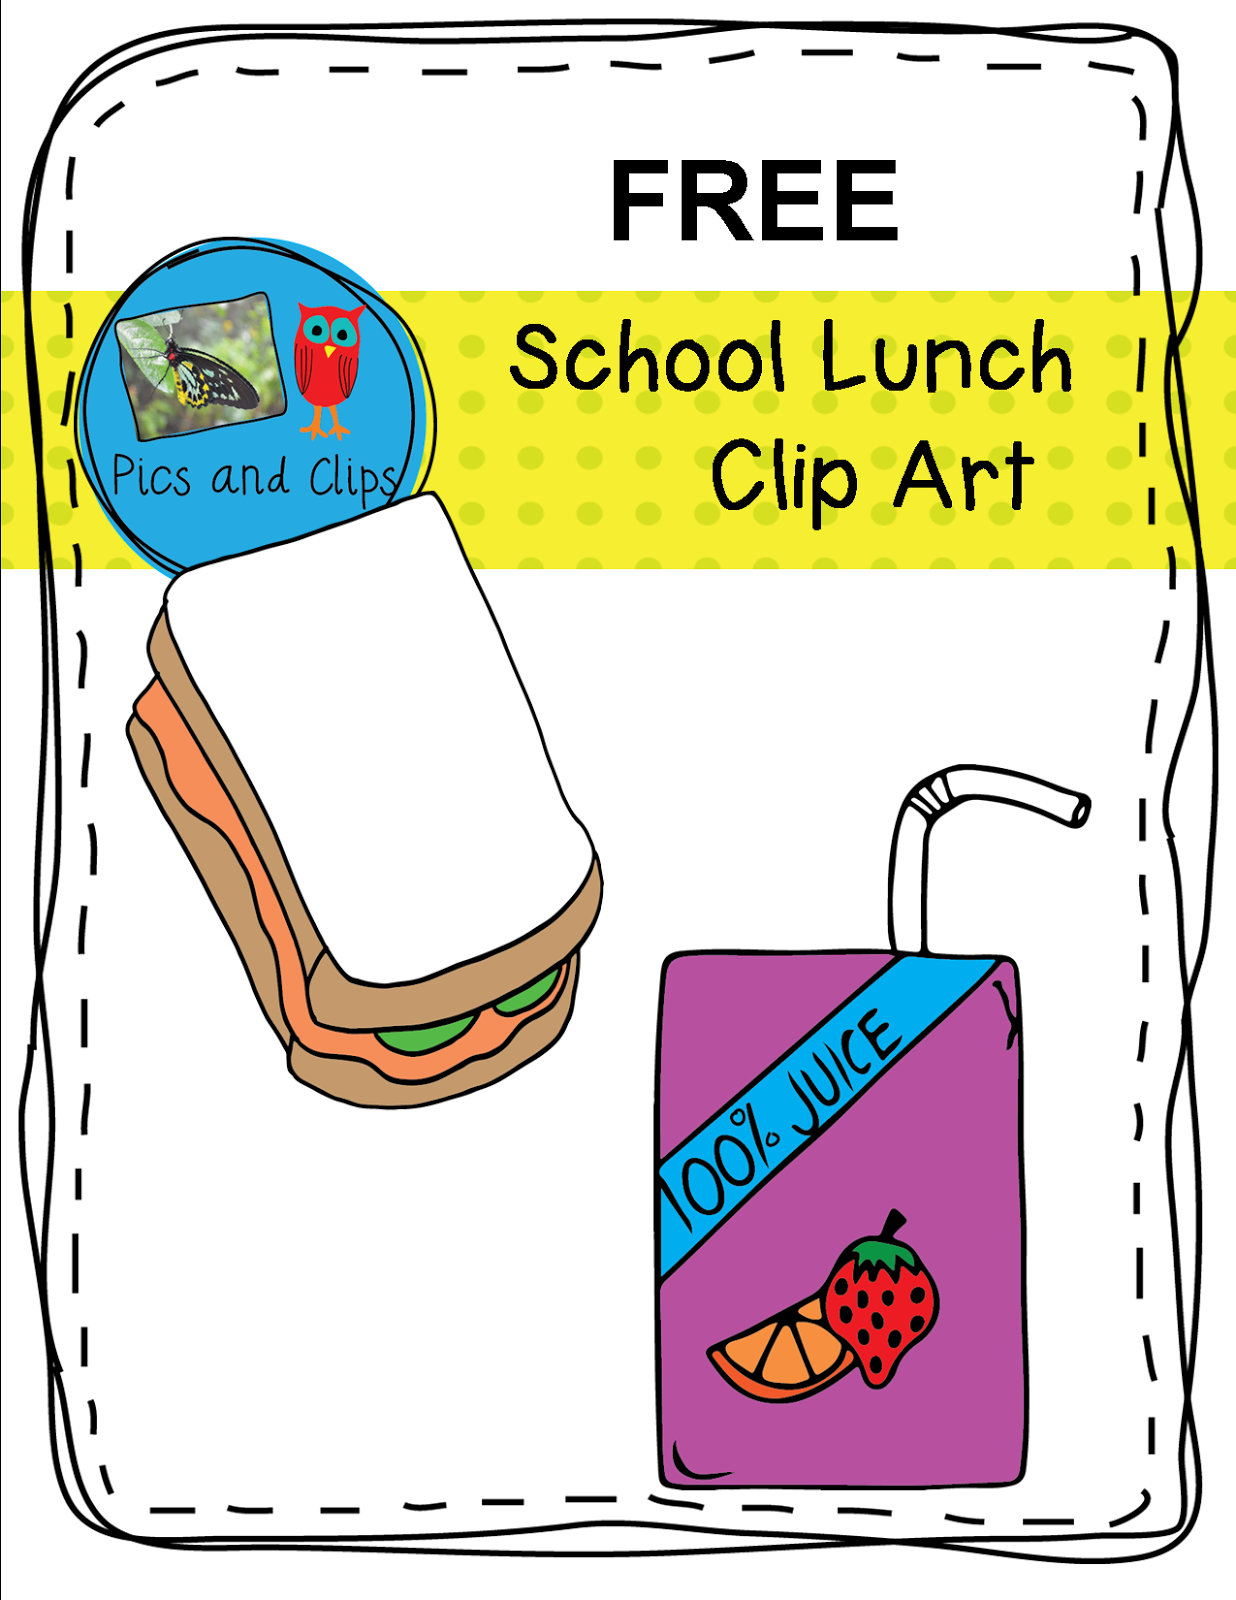 School lunch ideas clipart